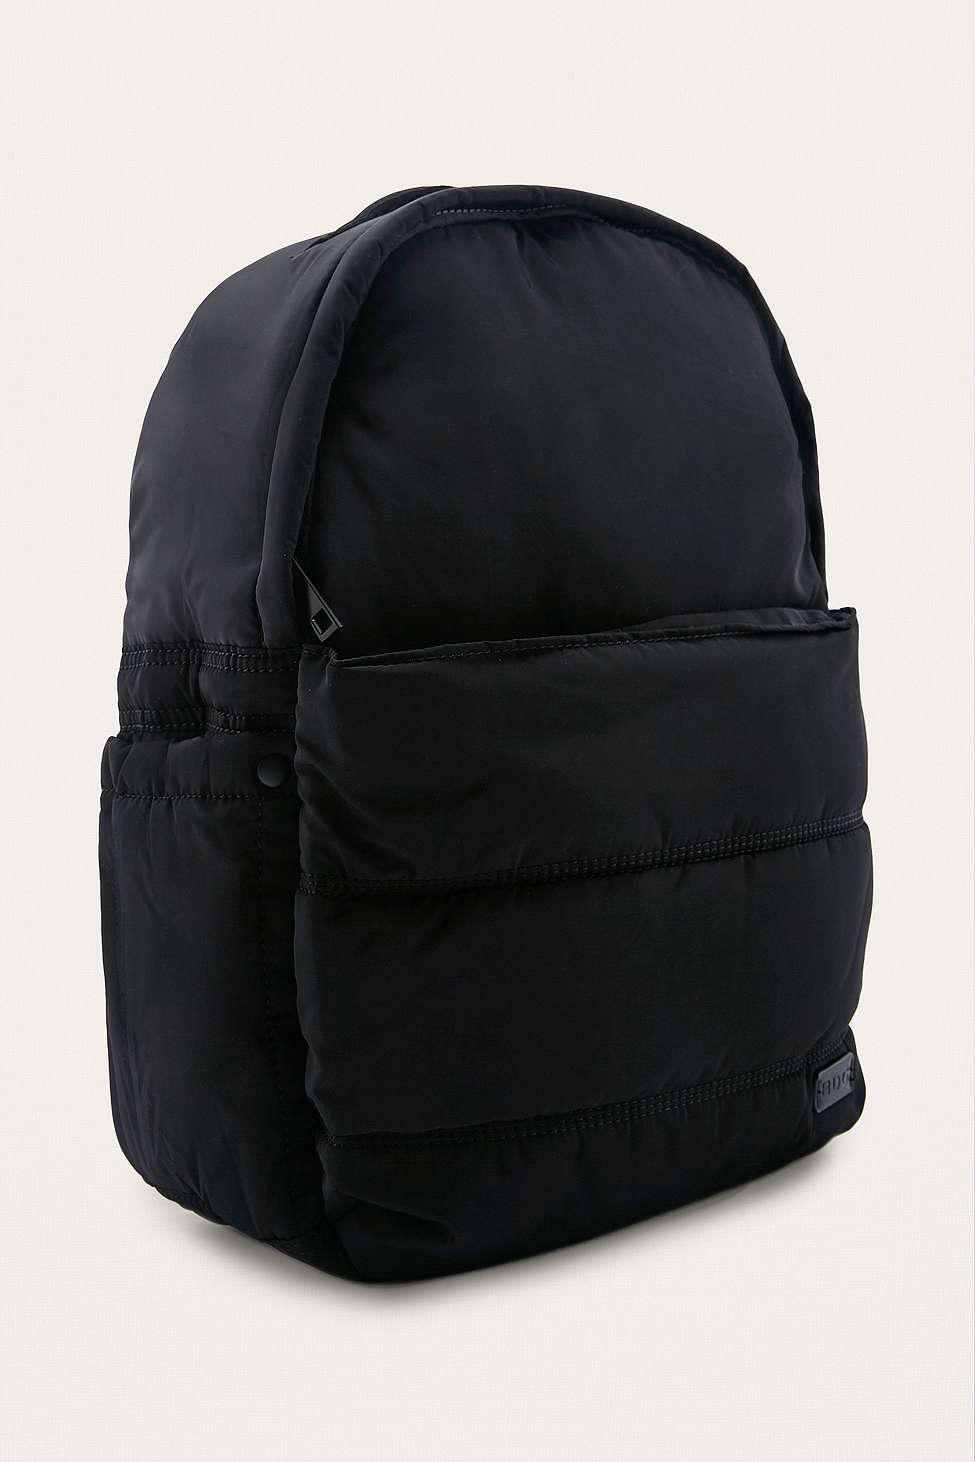 BDG Synthetic Black Quilted Puffer Backpack